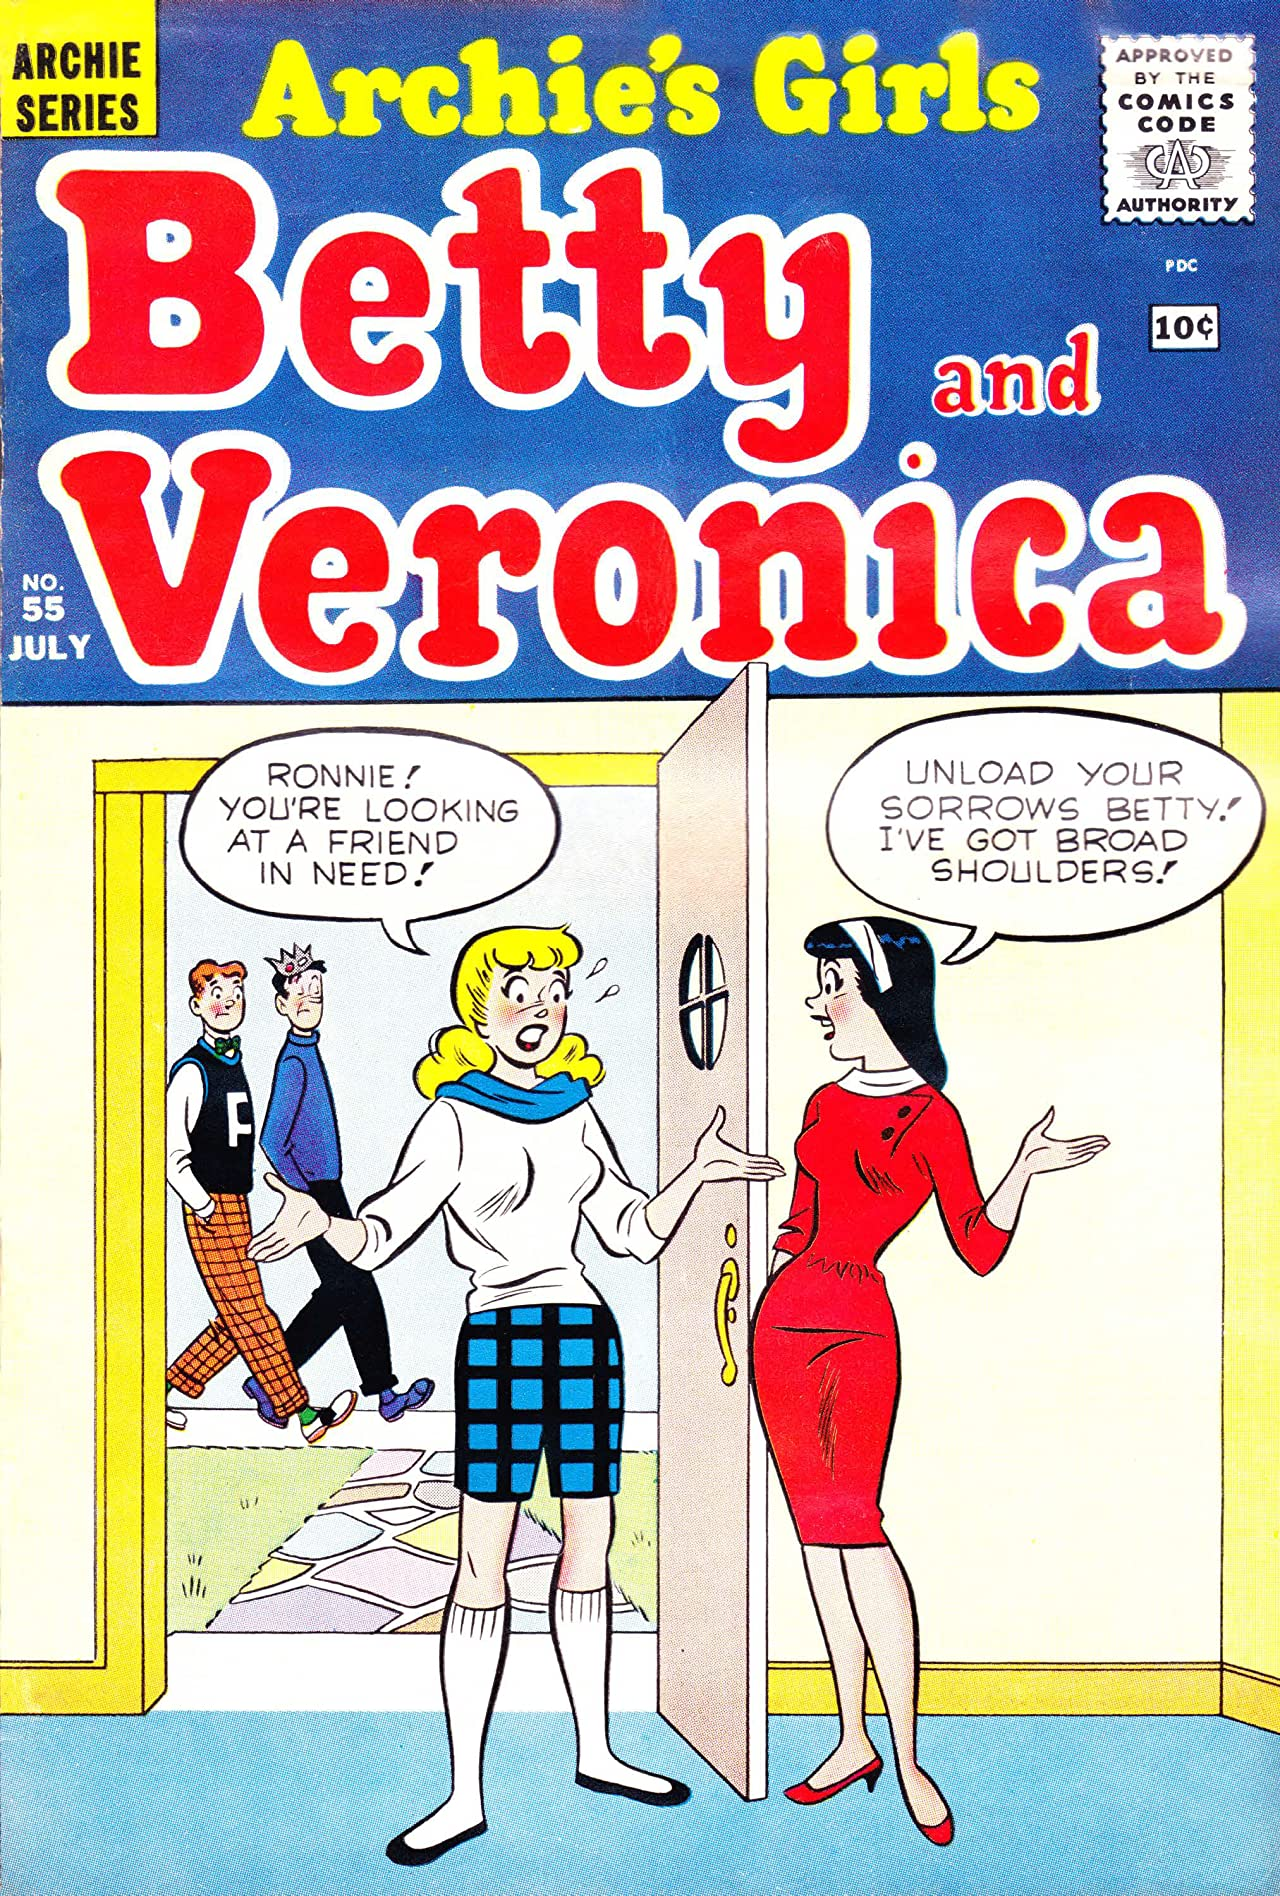 Archie's Girls Betty & Veronica No.55